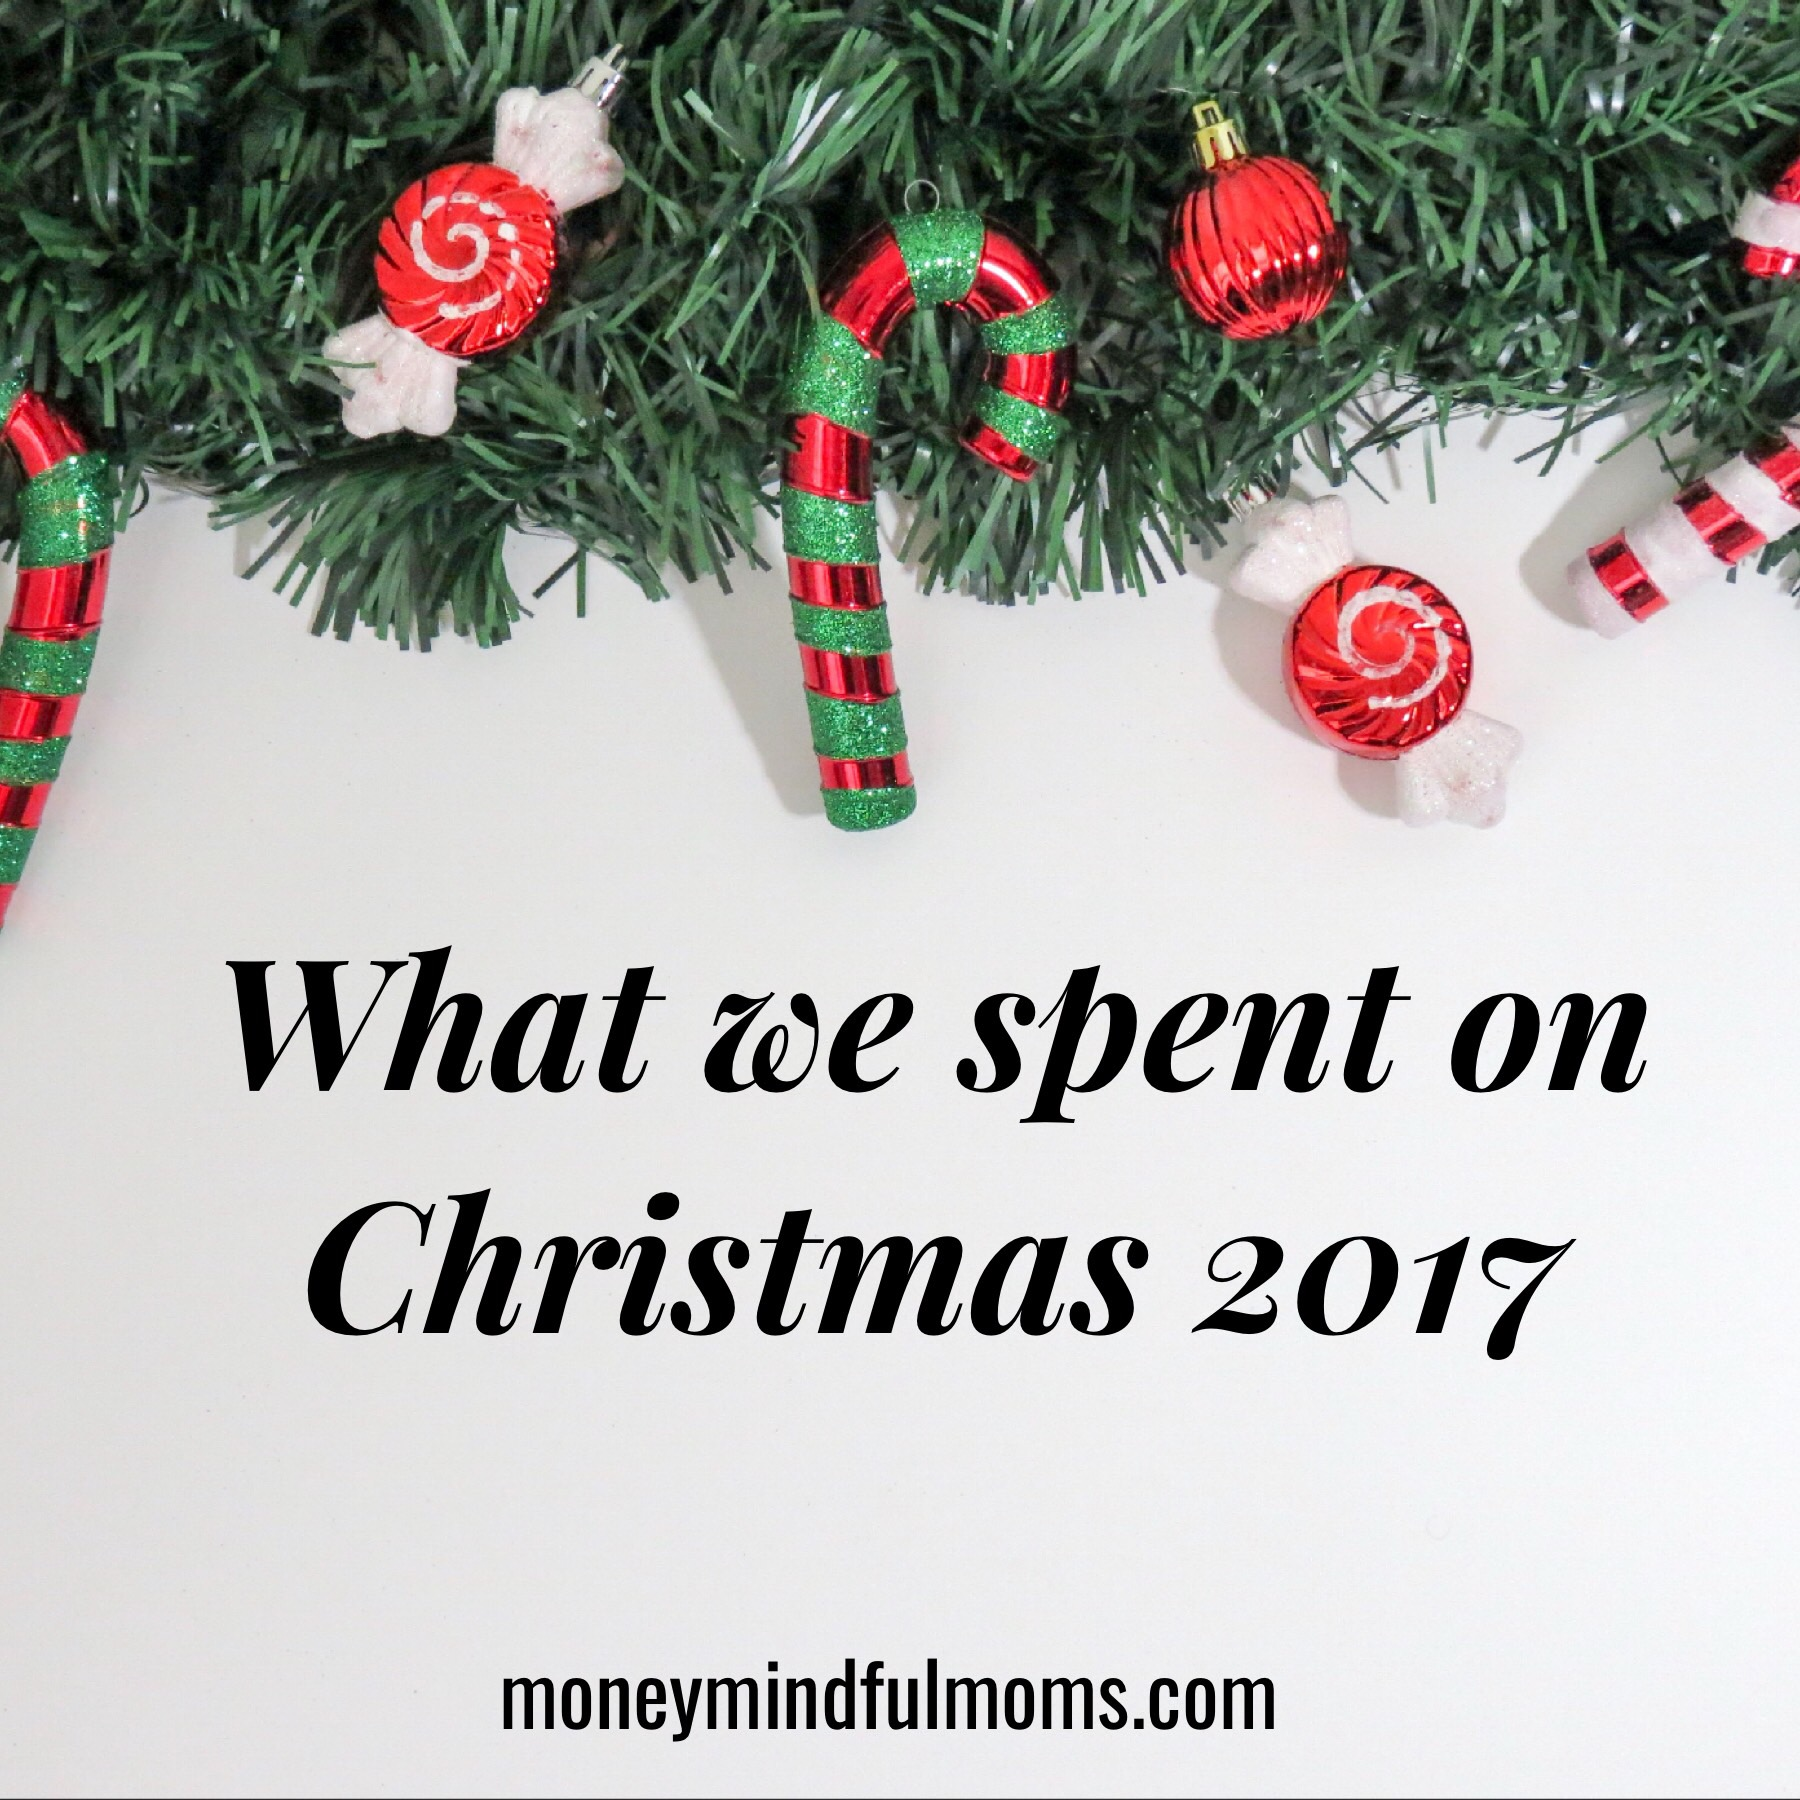 What we spent on Christmas this year